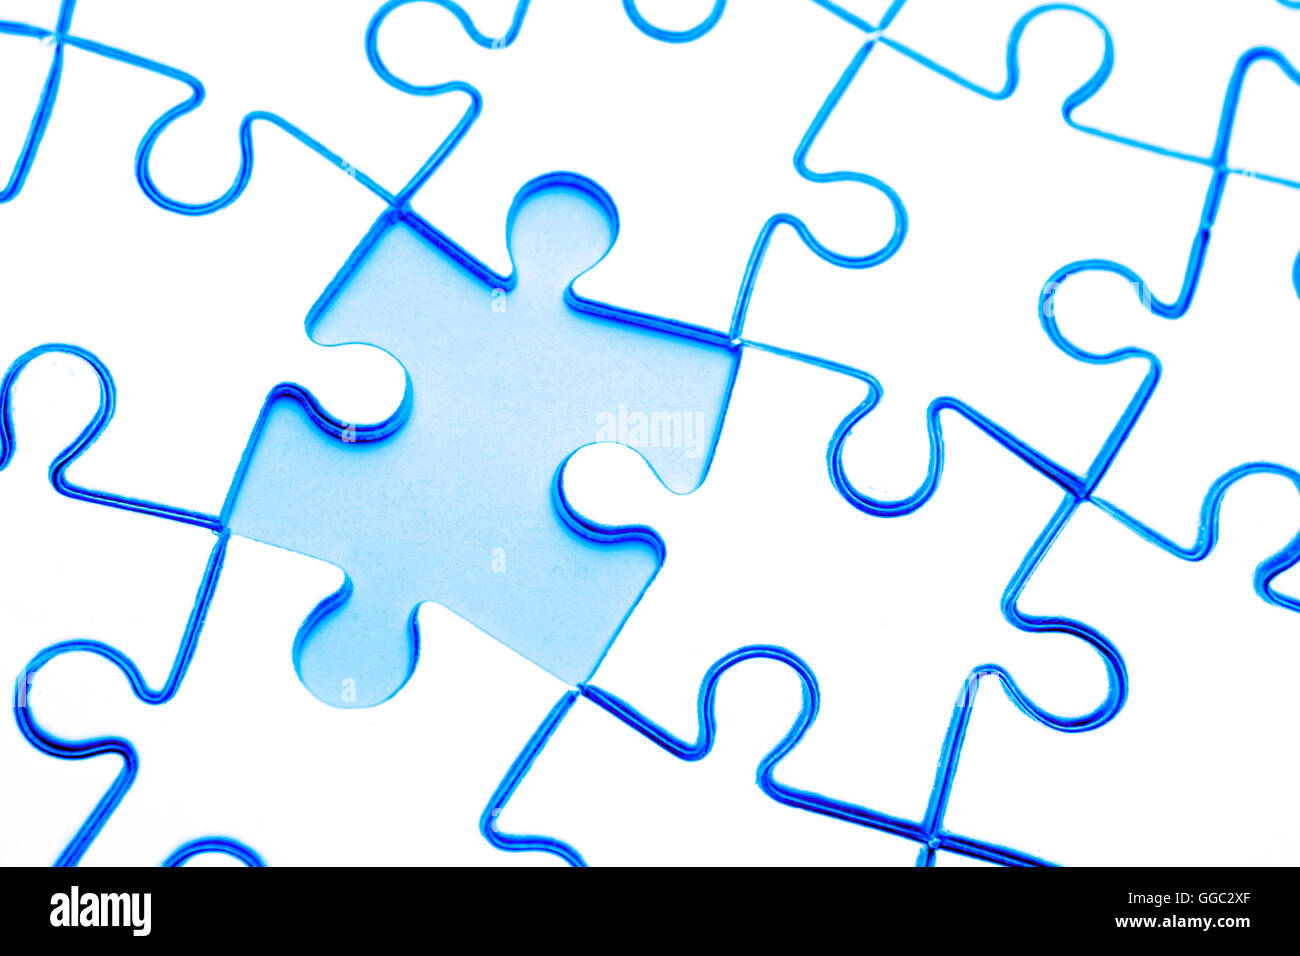 Piece missing from jigsaw puzzle Stock Photo